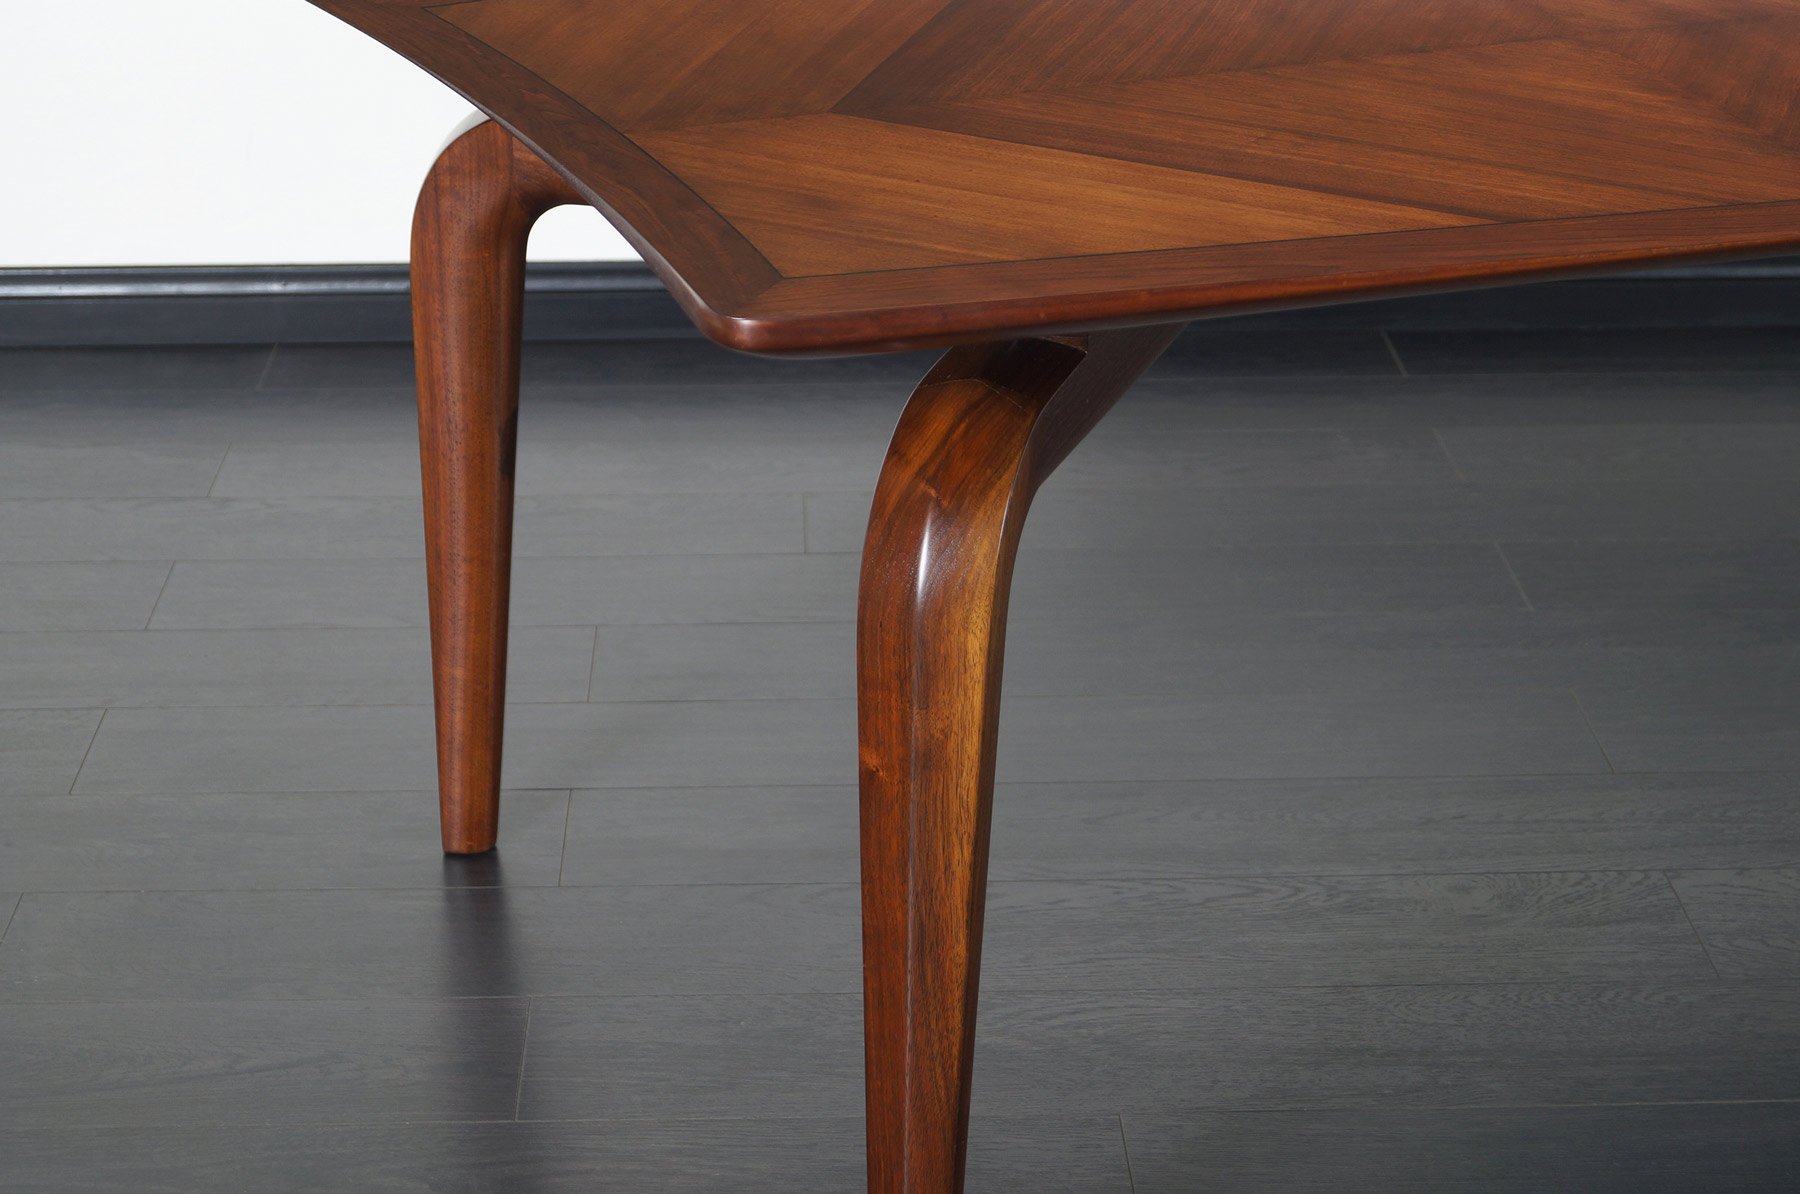 Vintage Diamond Shaped Conference Table or Dining Table by Monteverdi Young